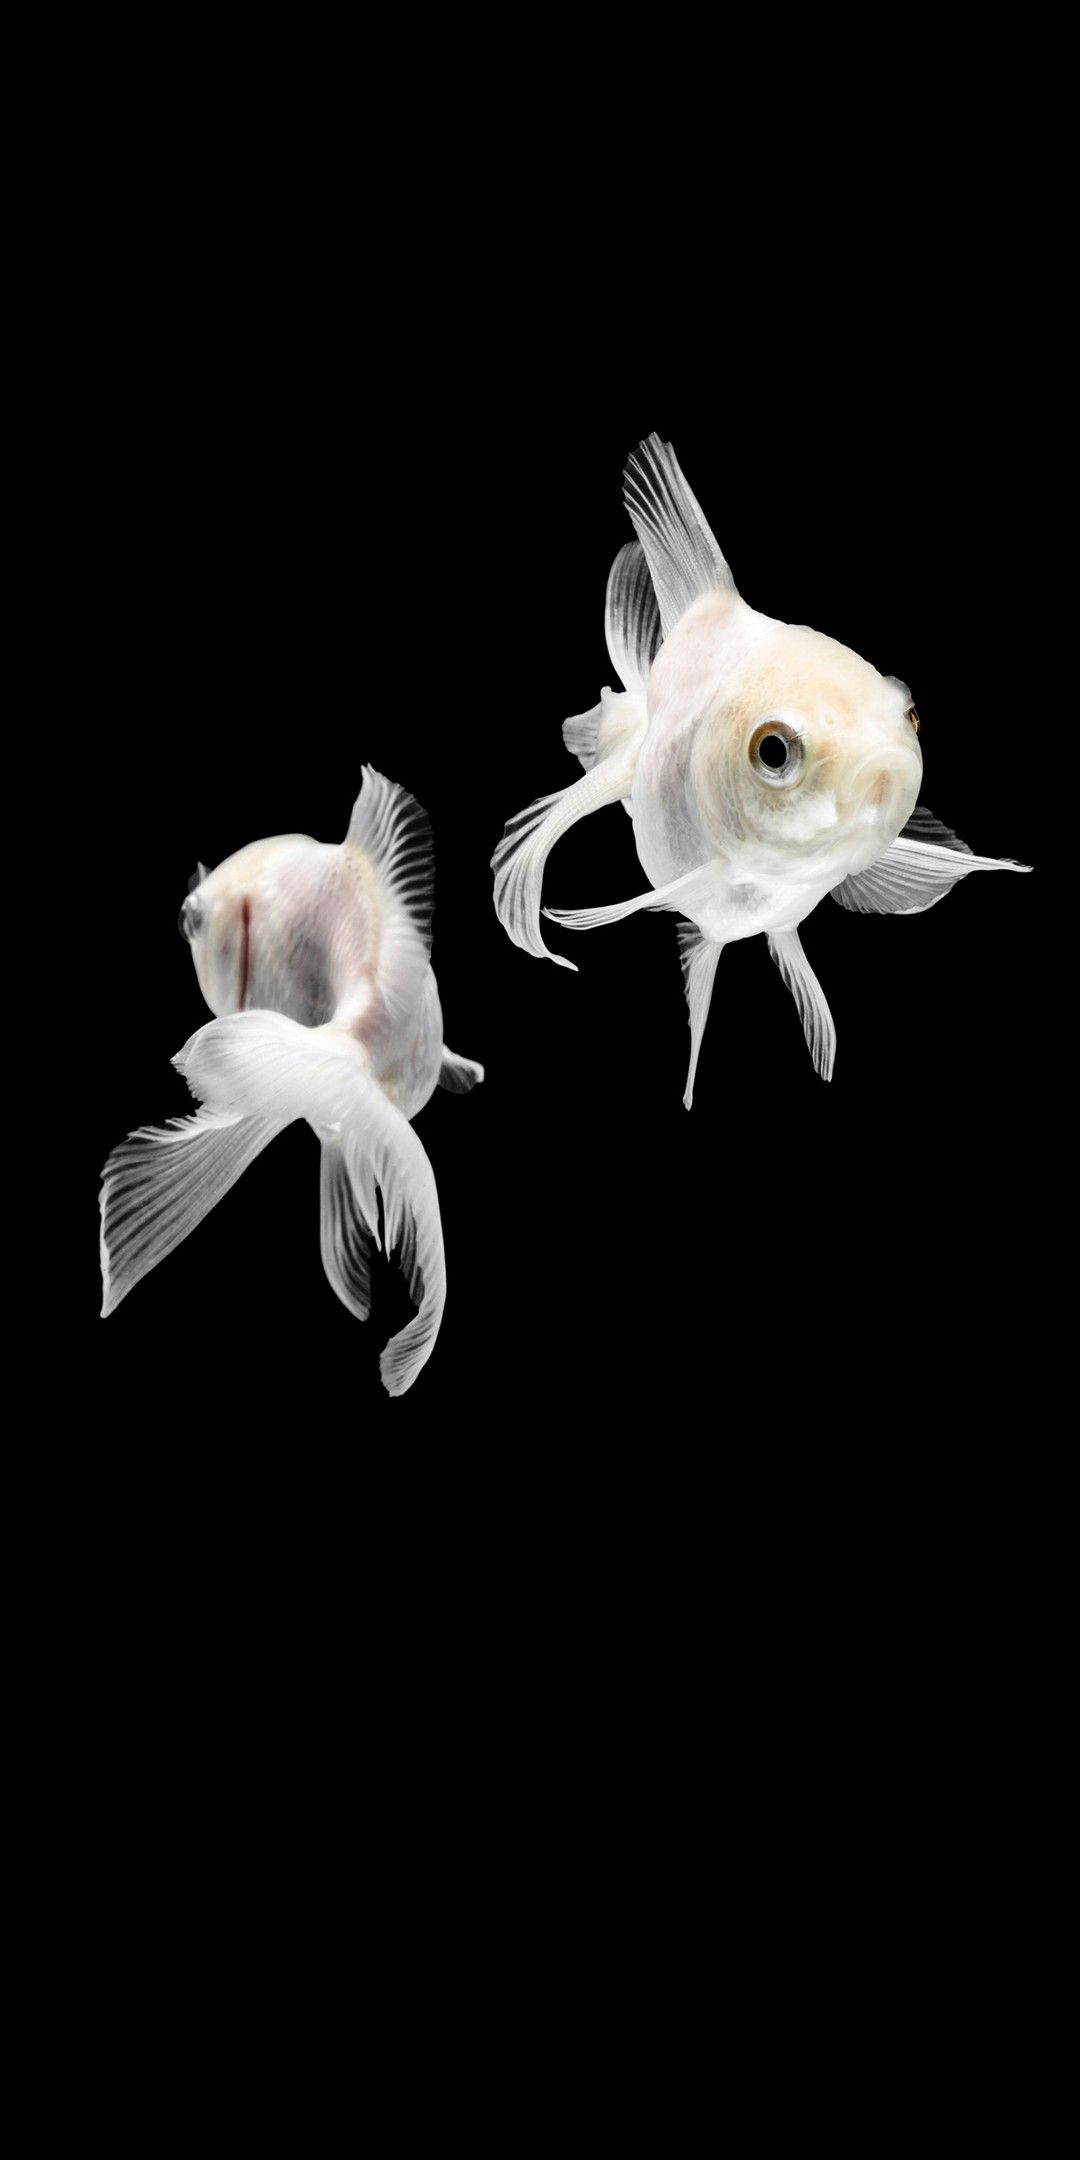 White Gold Fish Wallpaper Beautiful Fish Goldfish Wallpaper